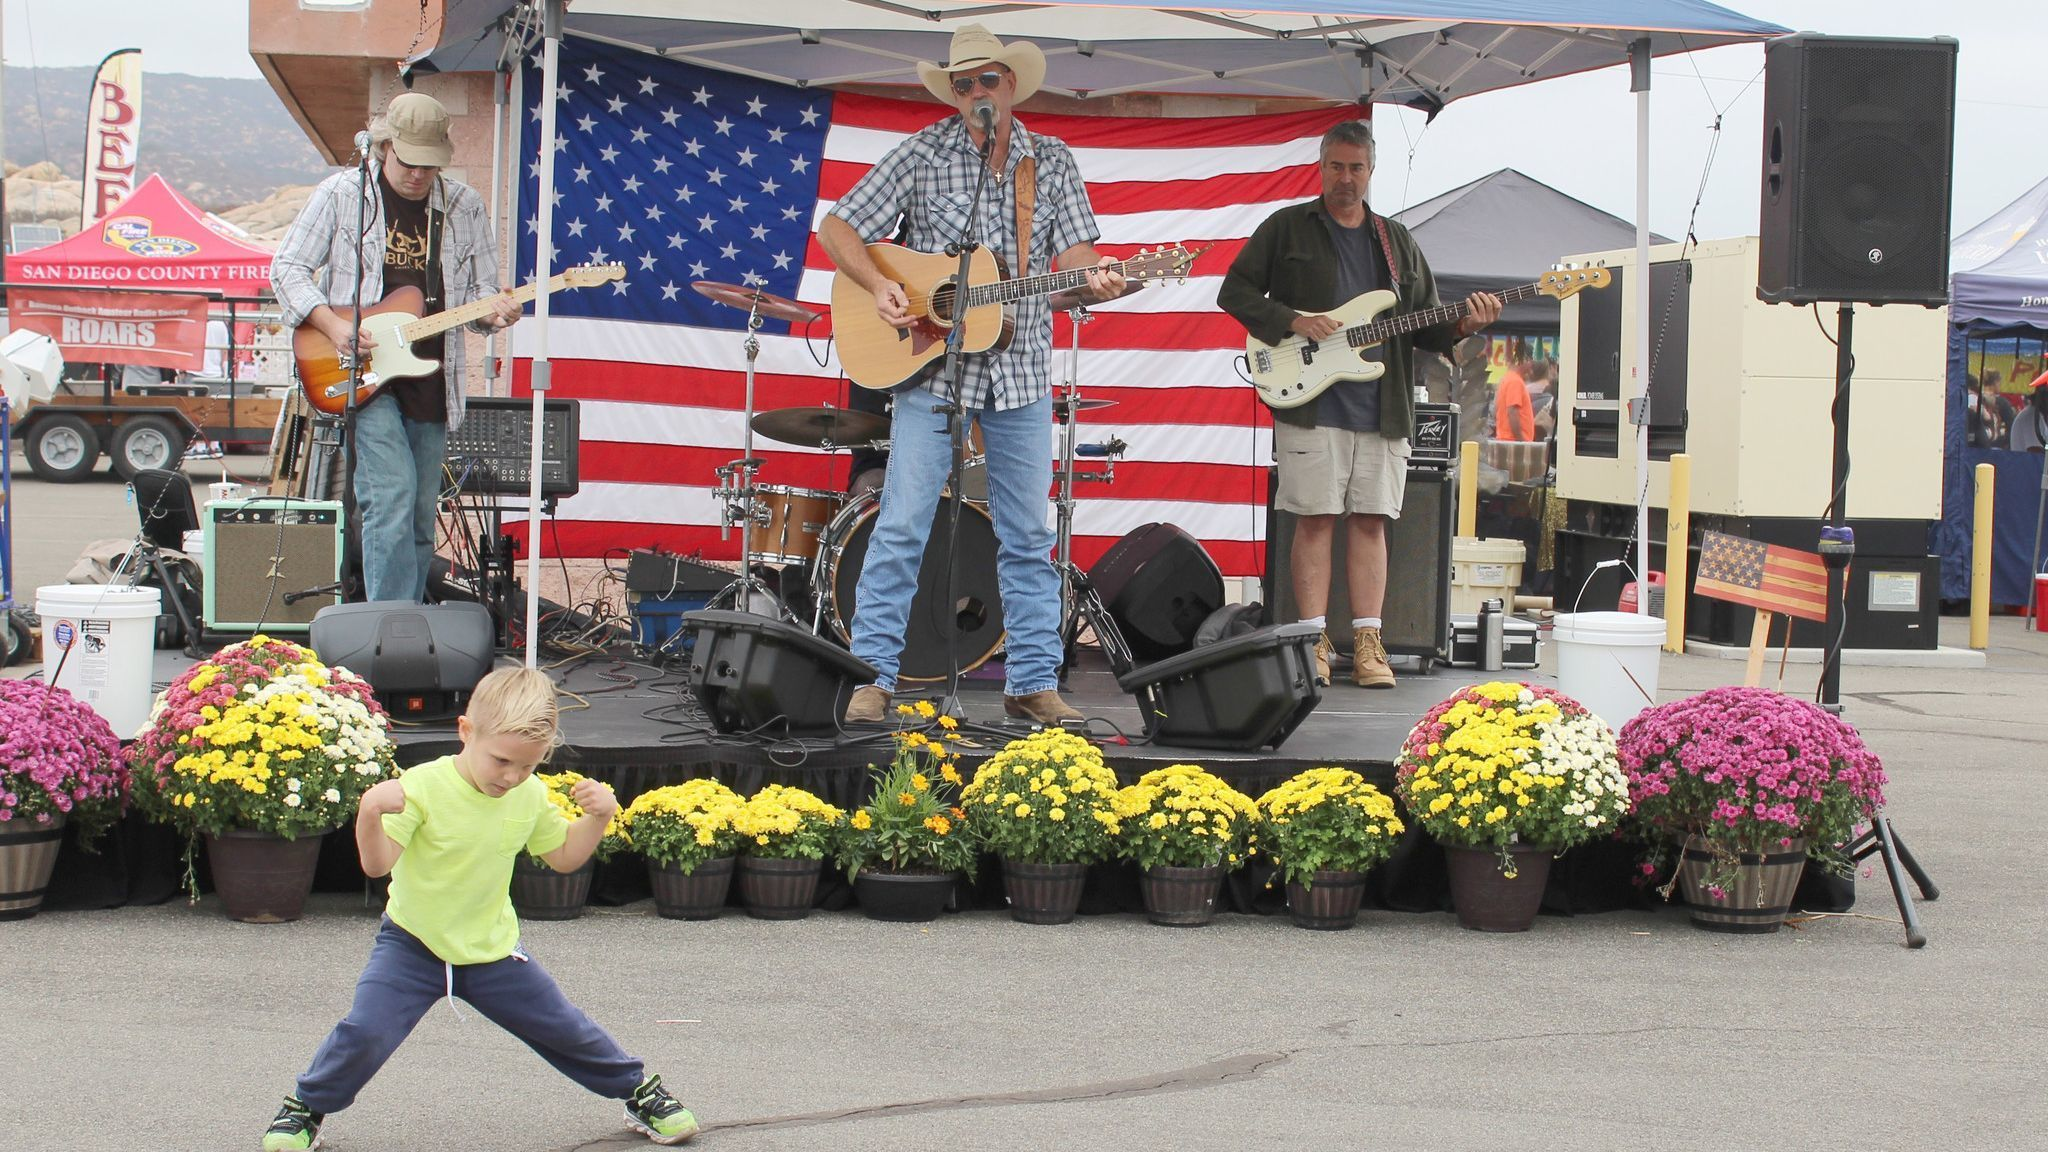 Four-year-old Ramona resident Curren Lamont dances to the tunes of the Southbound Jonny band at the Air Fair.